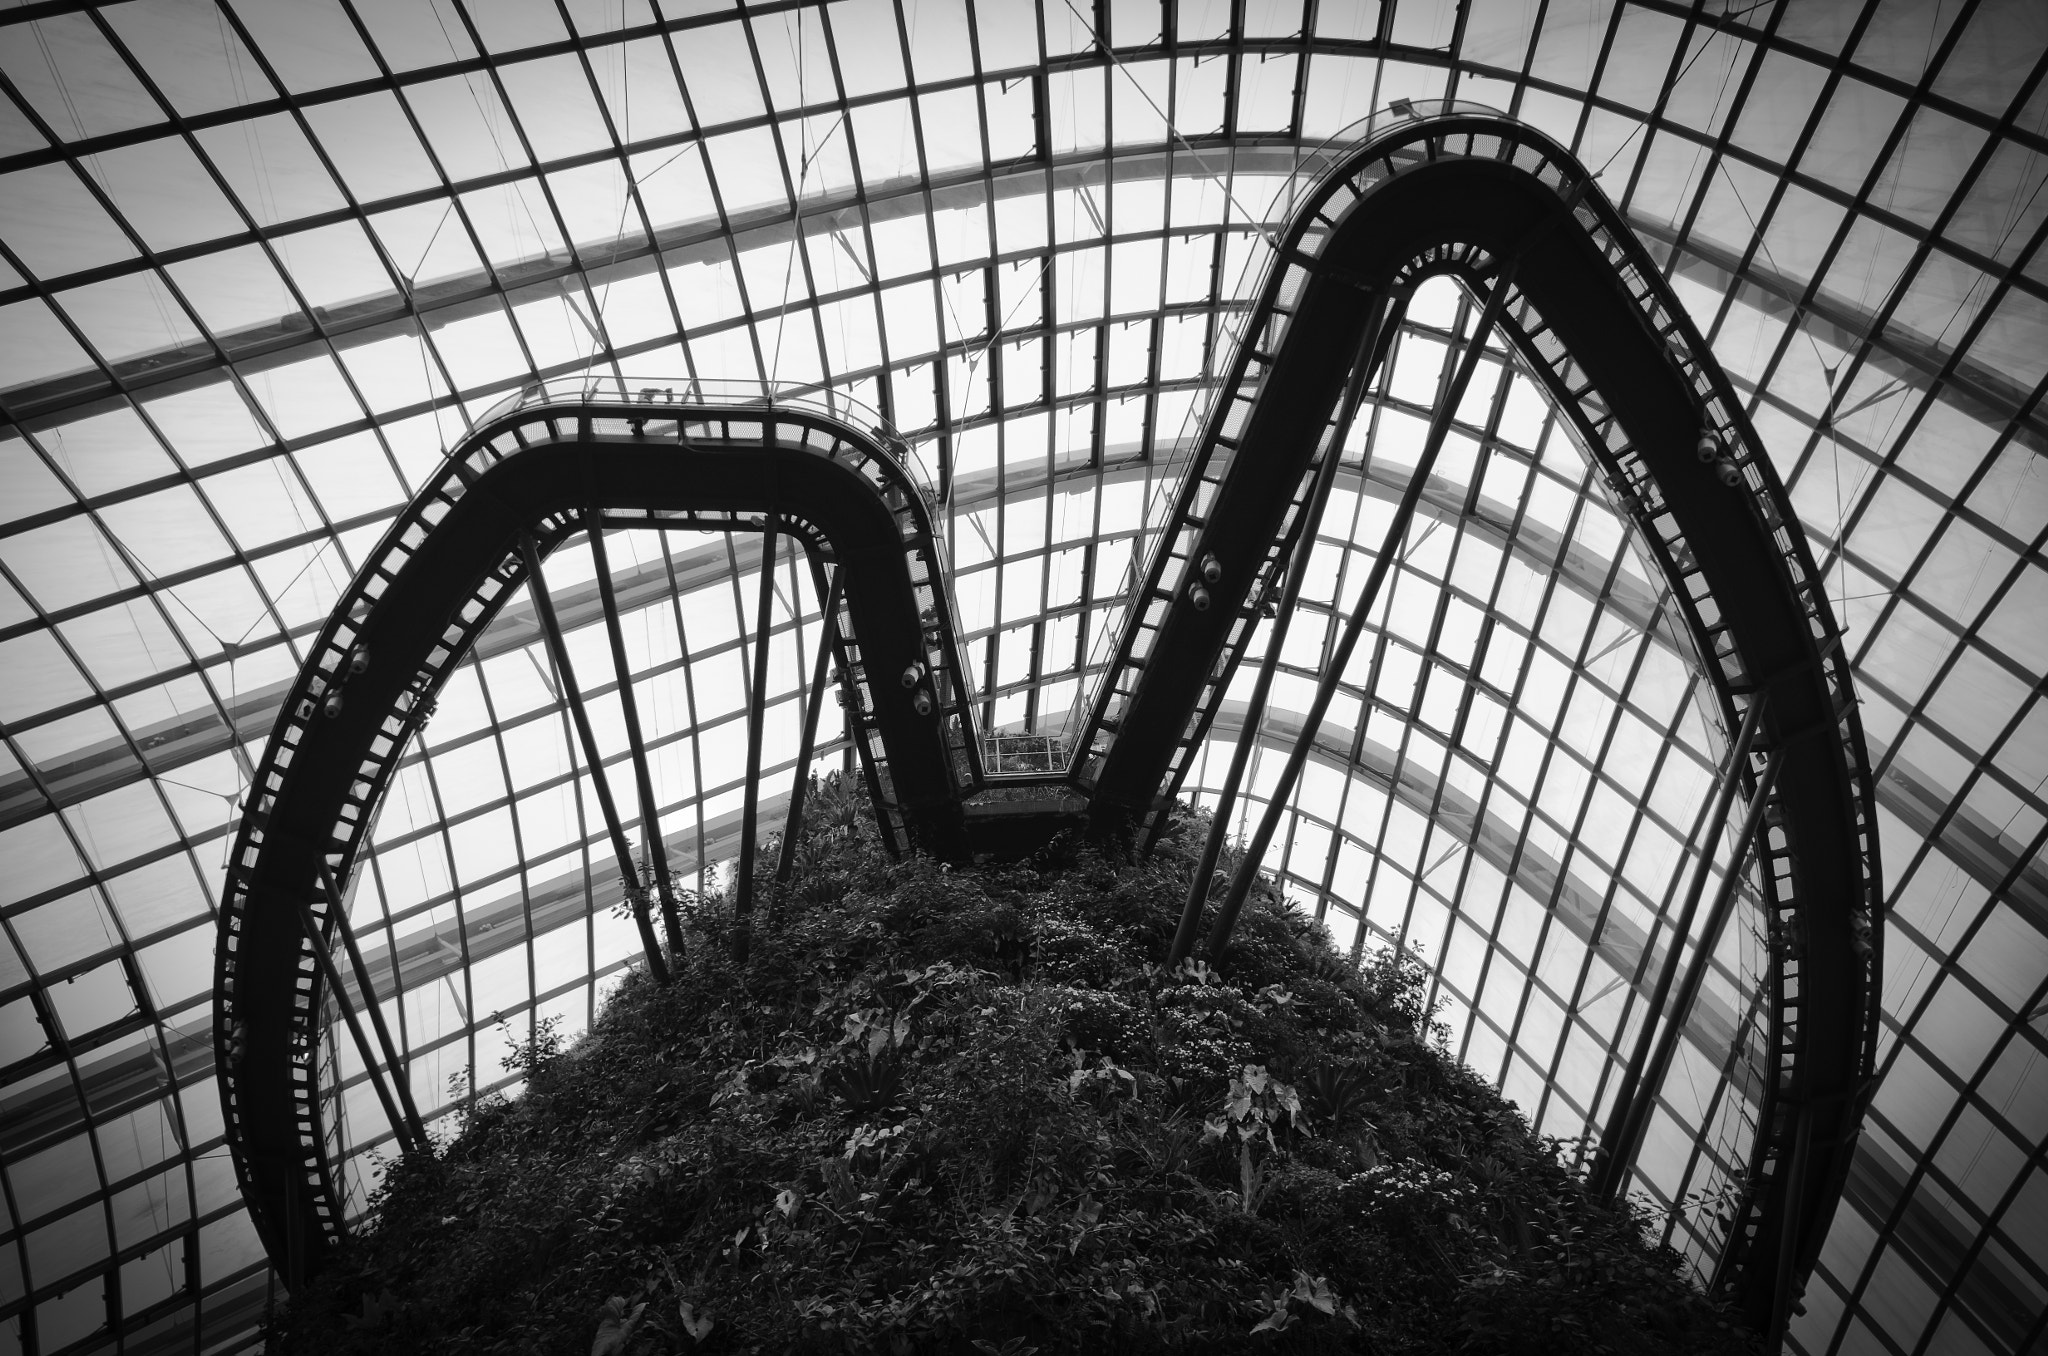 Photograph Forest in a Dome by Edmund Choy on 500px